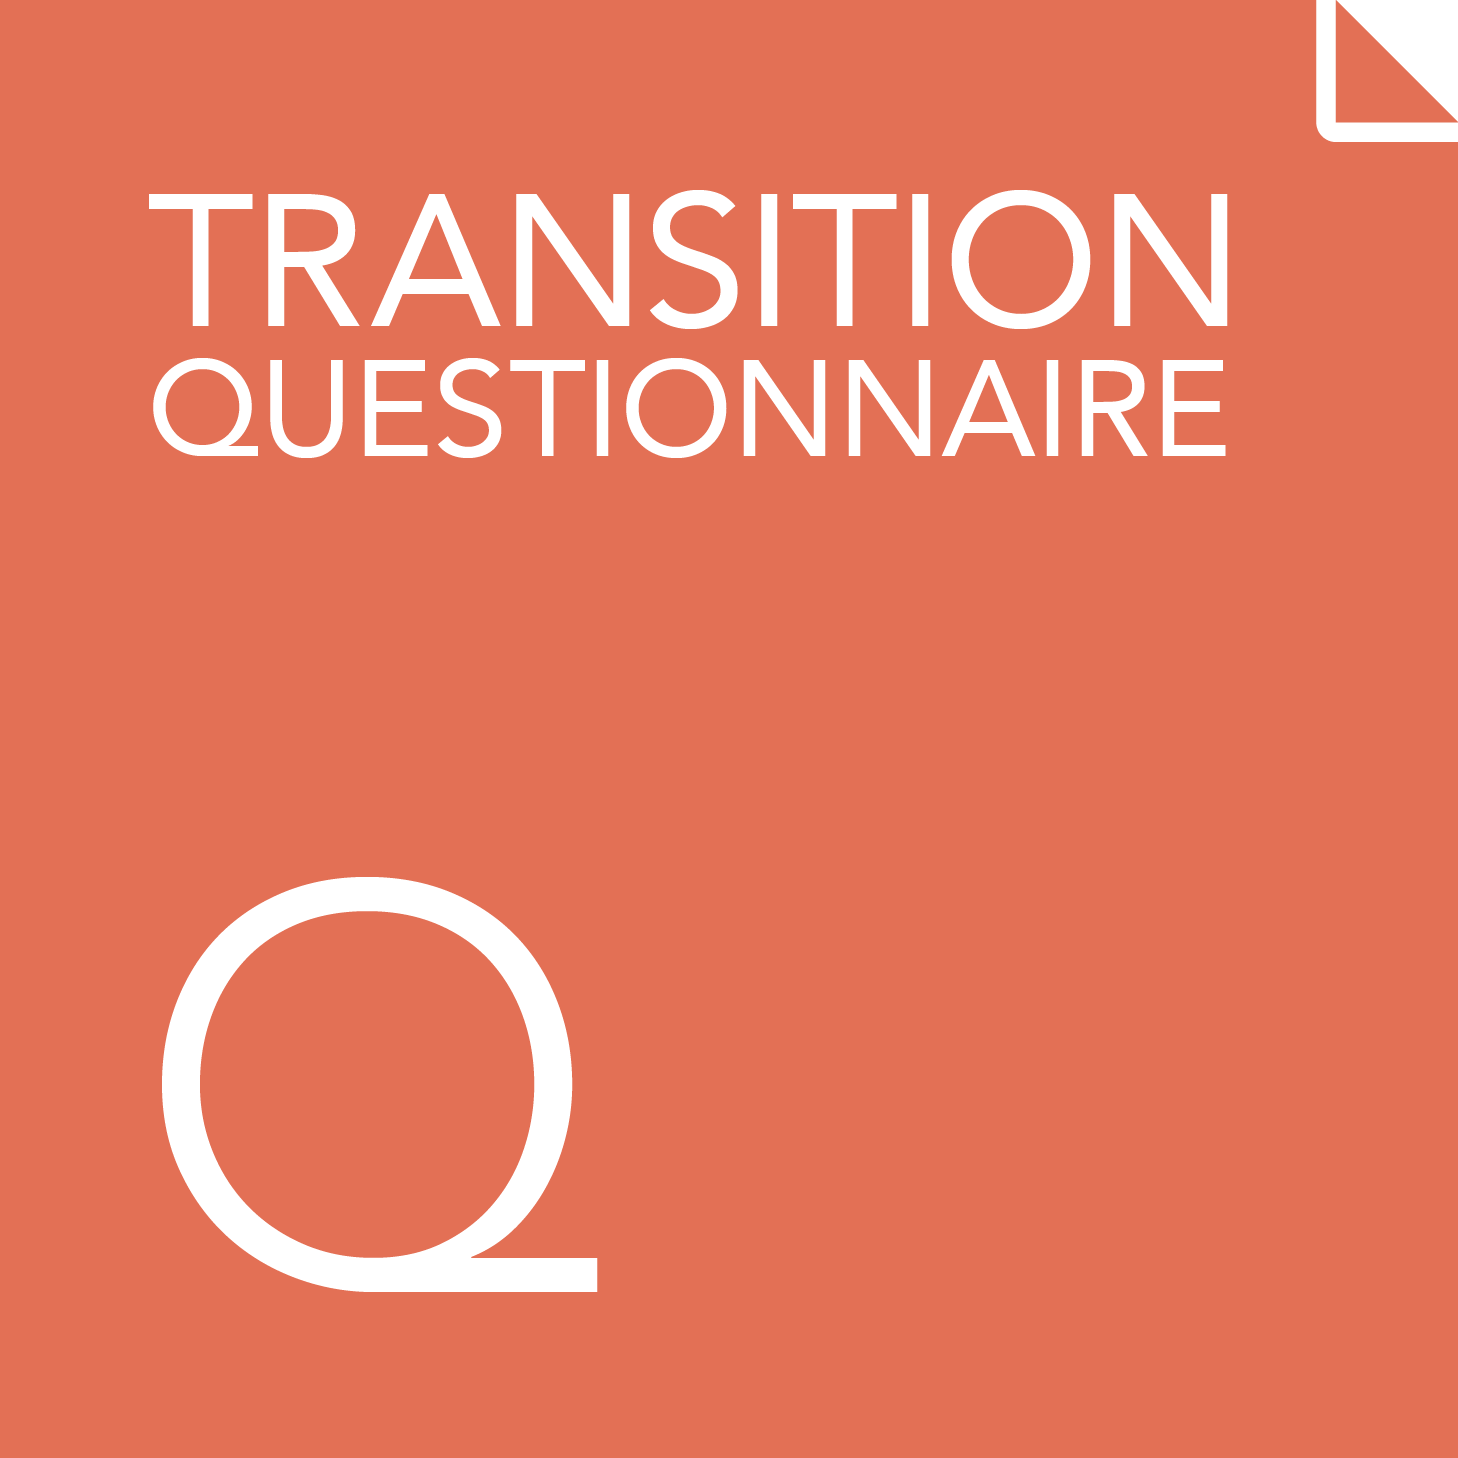 Transition questionnaire